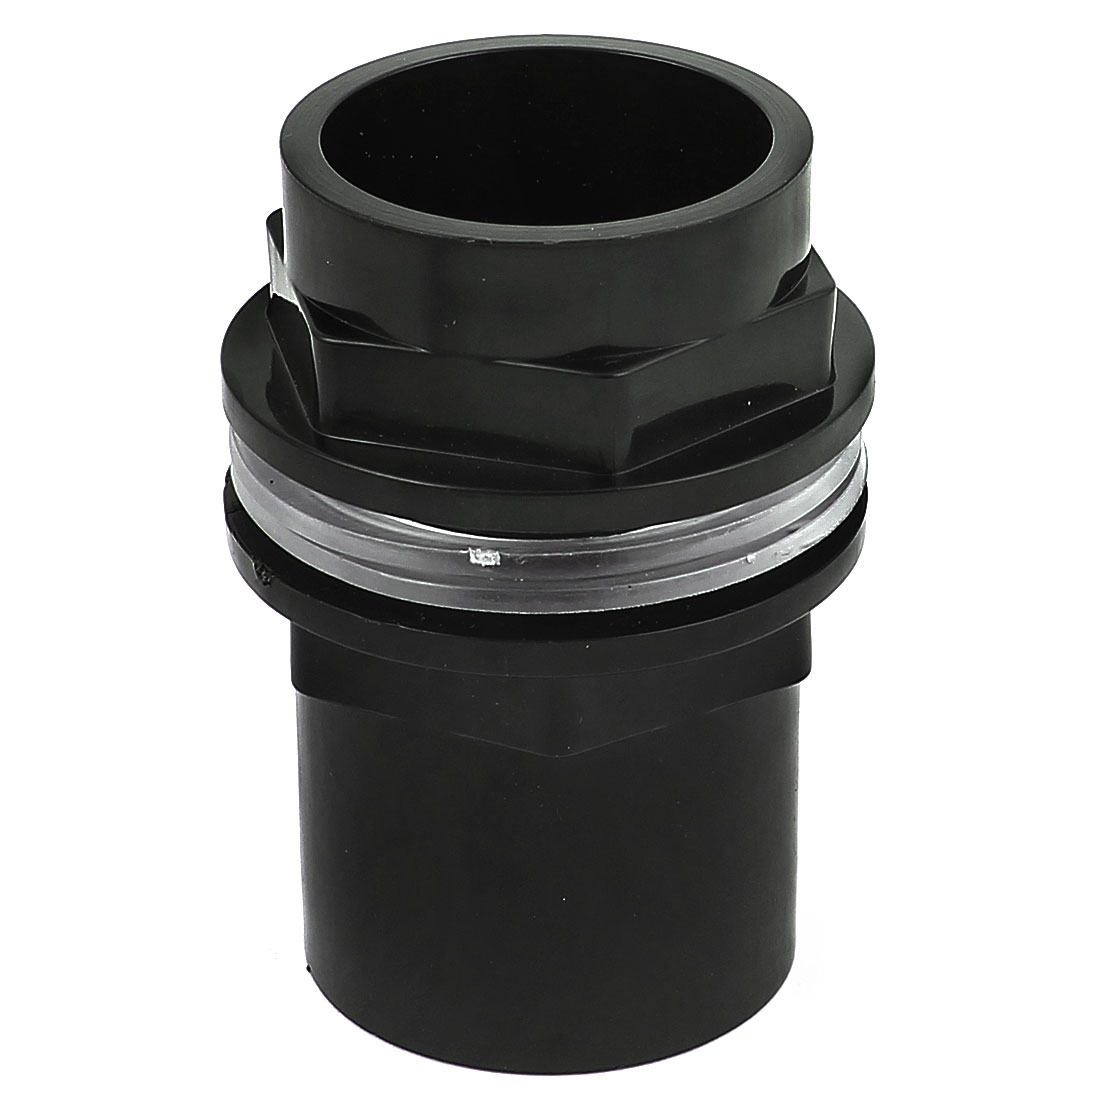 40mm Male Thread Plastic Straight Quick Connector Coupling Pipe Fitting